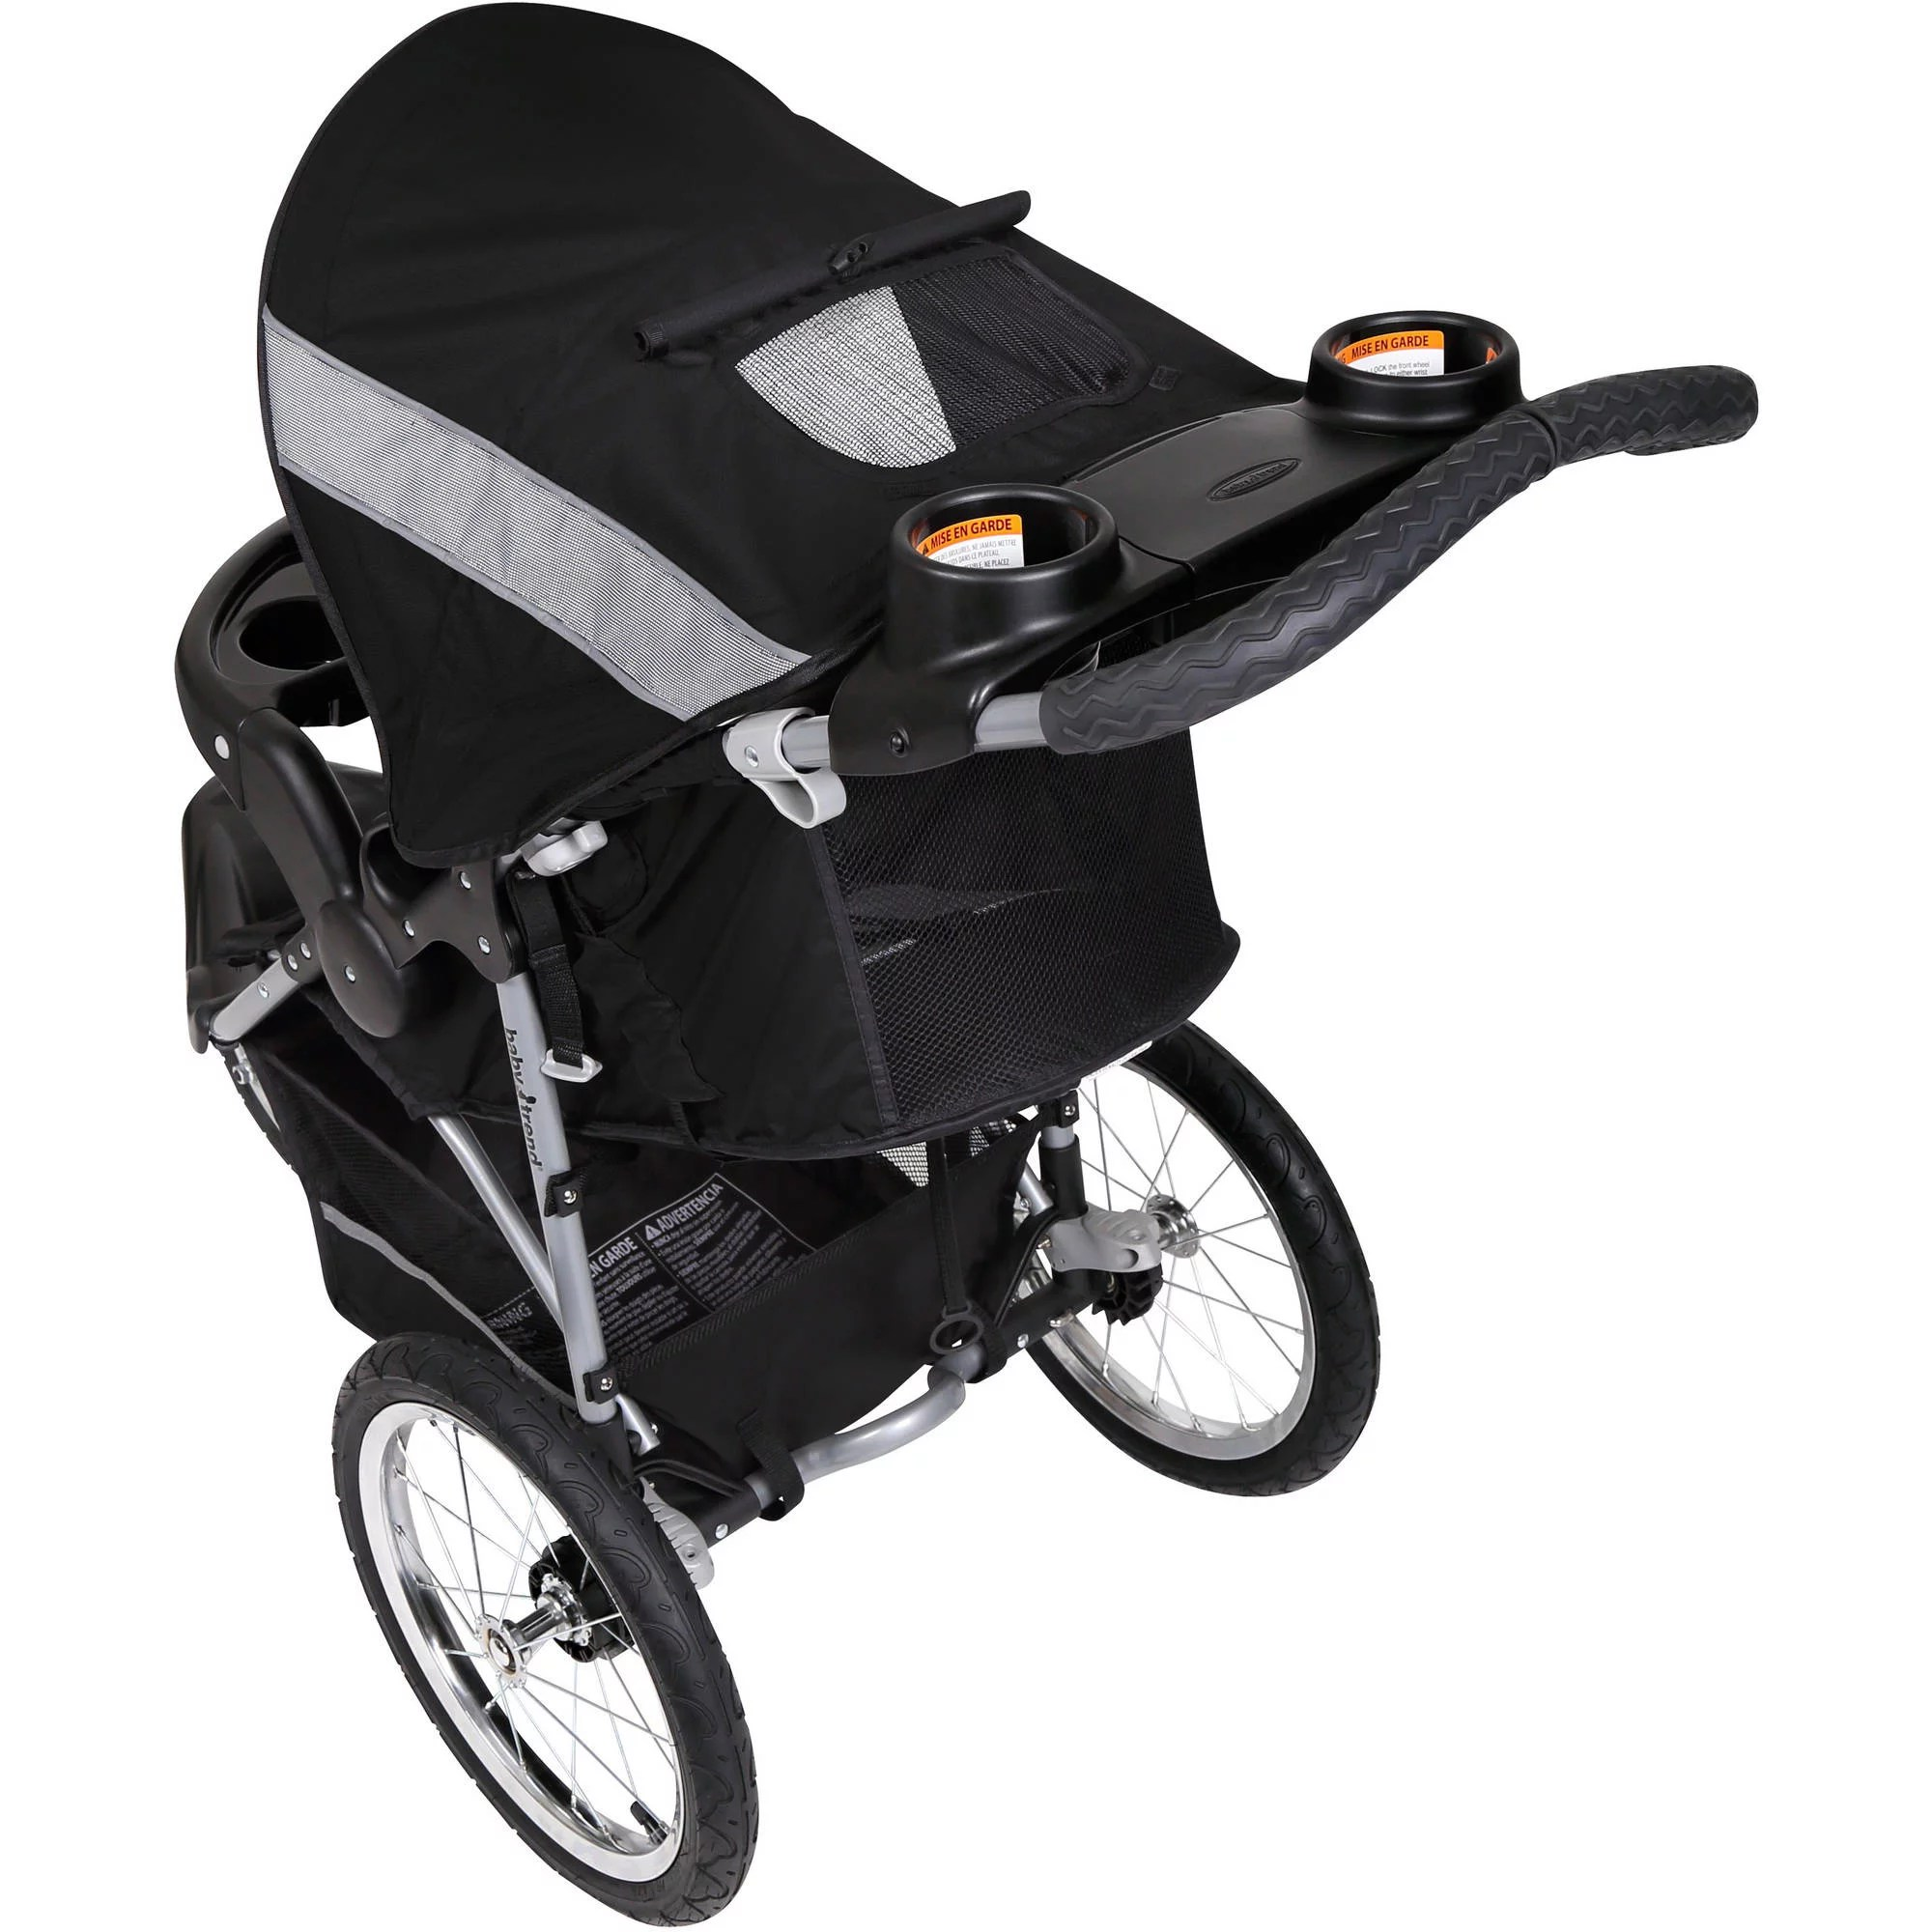 Car Seat Stroller Travel System Reviews Baby Trend Expedition Jogger Travel System Black Walmart